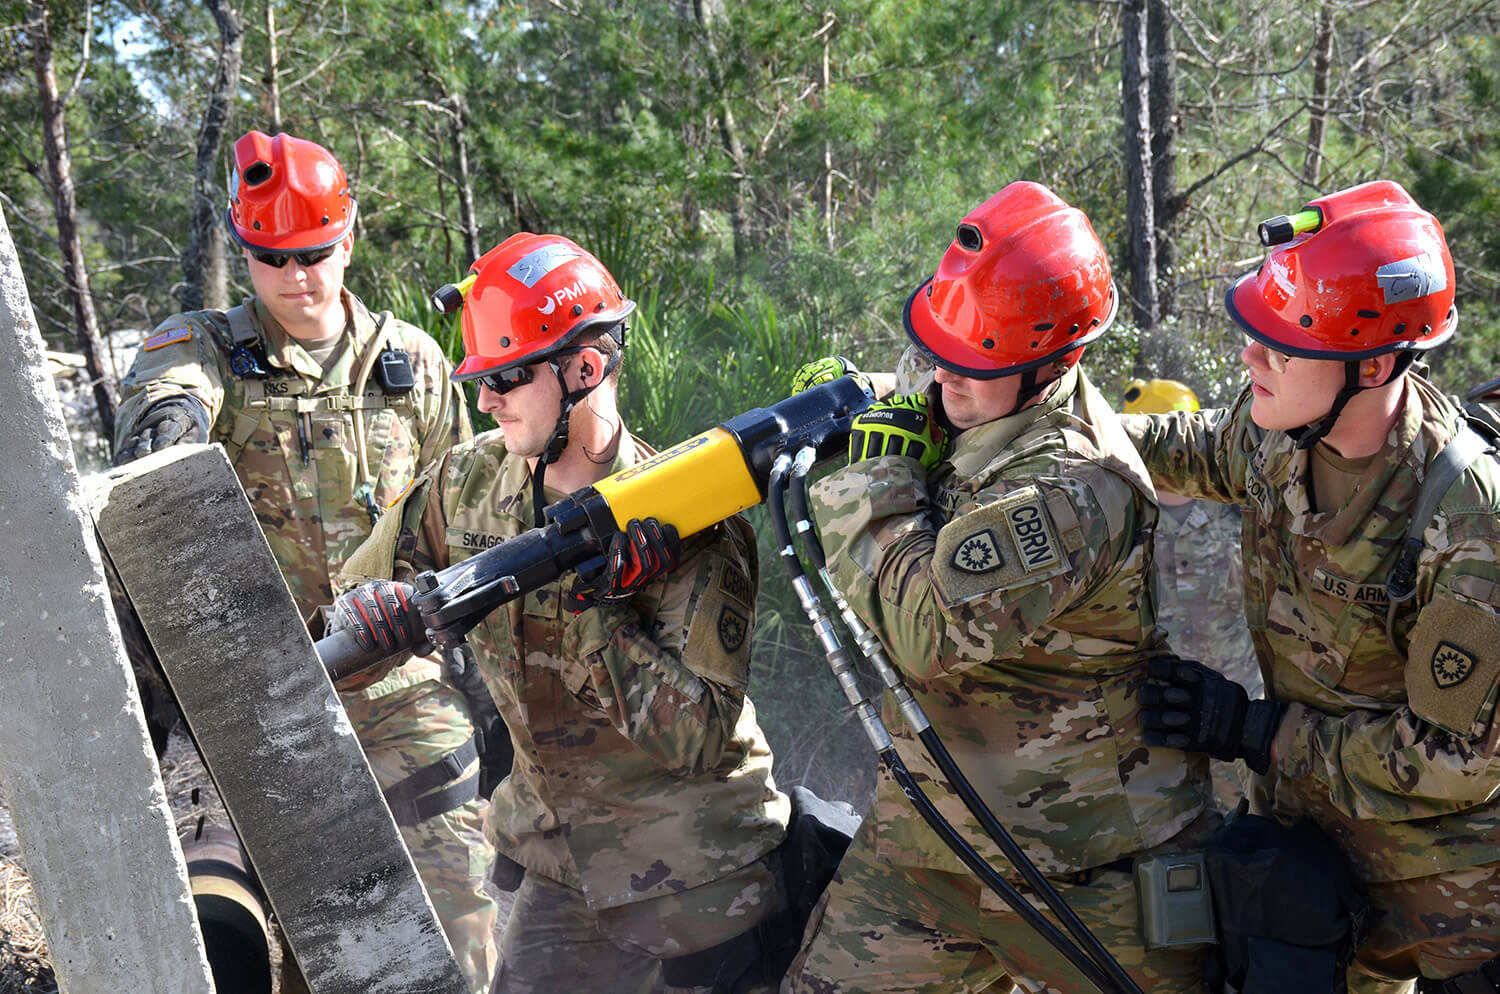 Soldiers with the Kentucky Chemical, Biological, Radiological and Nuclear Enhanced Response Force Package (CERFP)'s breech and break team use a hammer drill to extract a simulated victim from a rubble pile during an exercise evaluation at Camp Blanding, Fla., January 2019. The CERFP was tasked with responding to a 10-kiloton nuclear explosion, establishing a support zone, searching the hot zone for victims, extracting the victims from the hot zone, decontaminating the victims and providing medical assistance. Kentucky Army National Guard photo by SGT Taylor Tribble